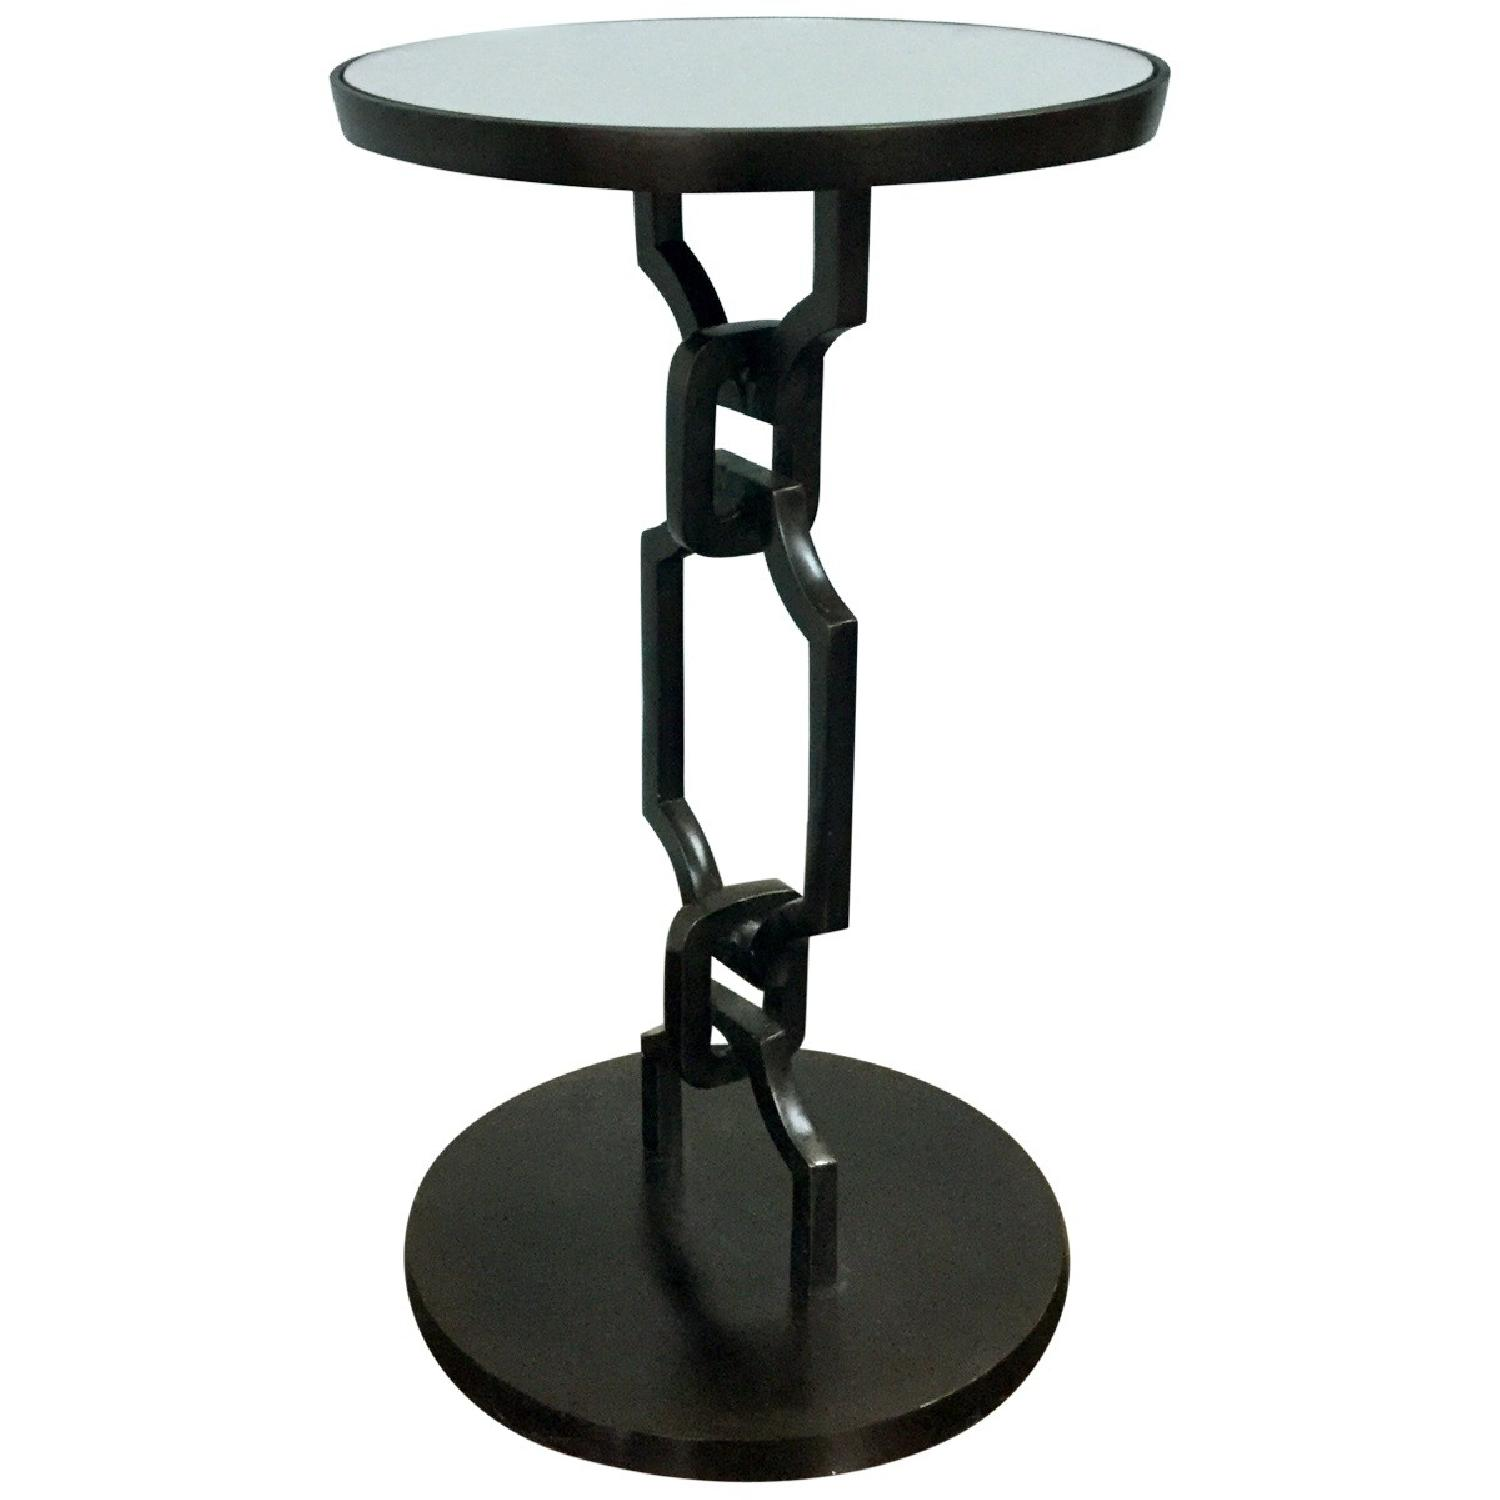 designe gallerie aluminium metal round black accent aptdeco frame table marble dining room ikea narrow end drawer pulls and knobs tables for small spaces antique oval side iron